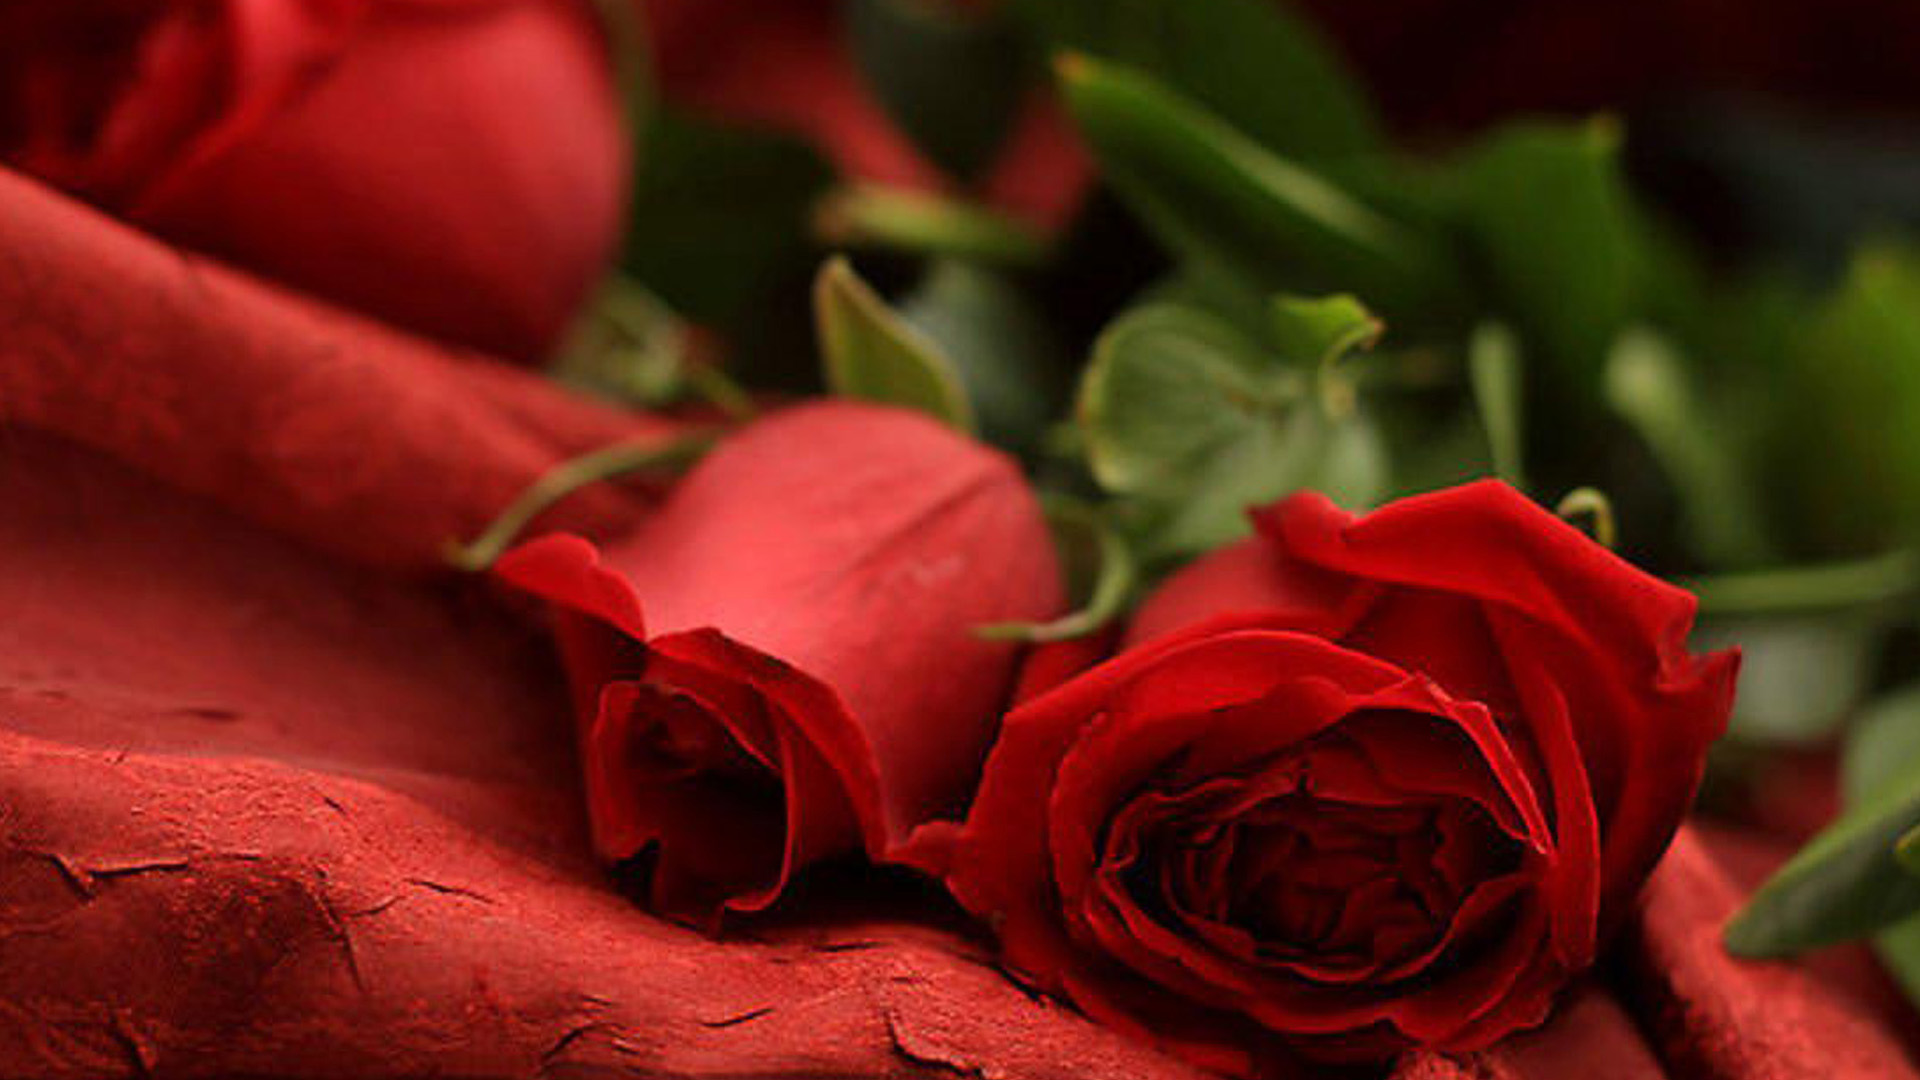 Kingdom Hearts Iphone Wallpaper Download Romantic Red Roses Wallpaper Gallery